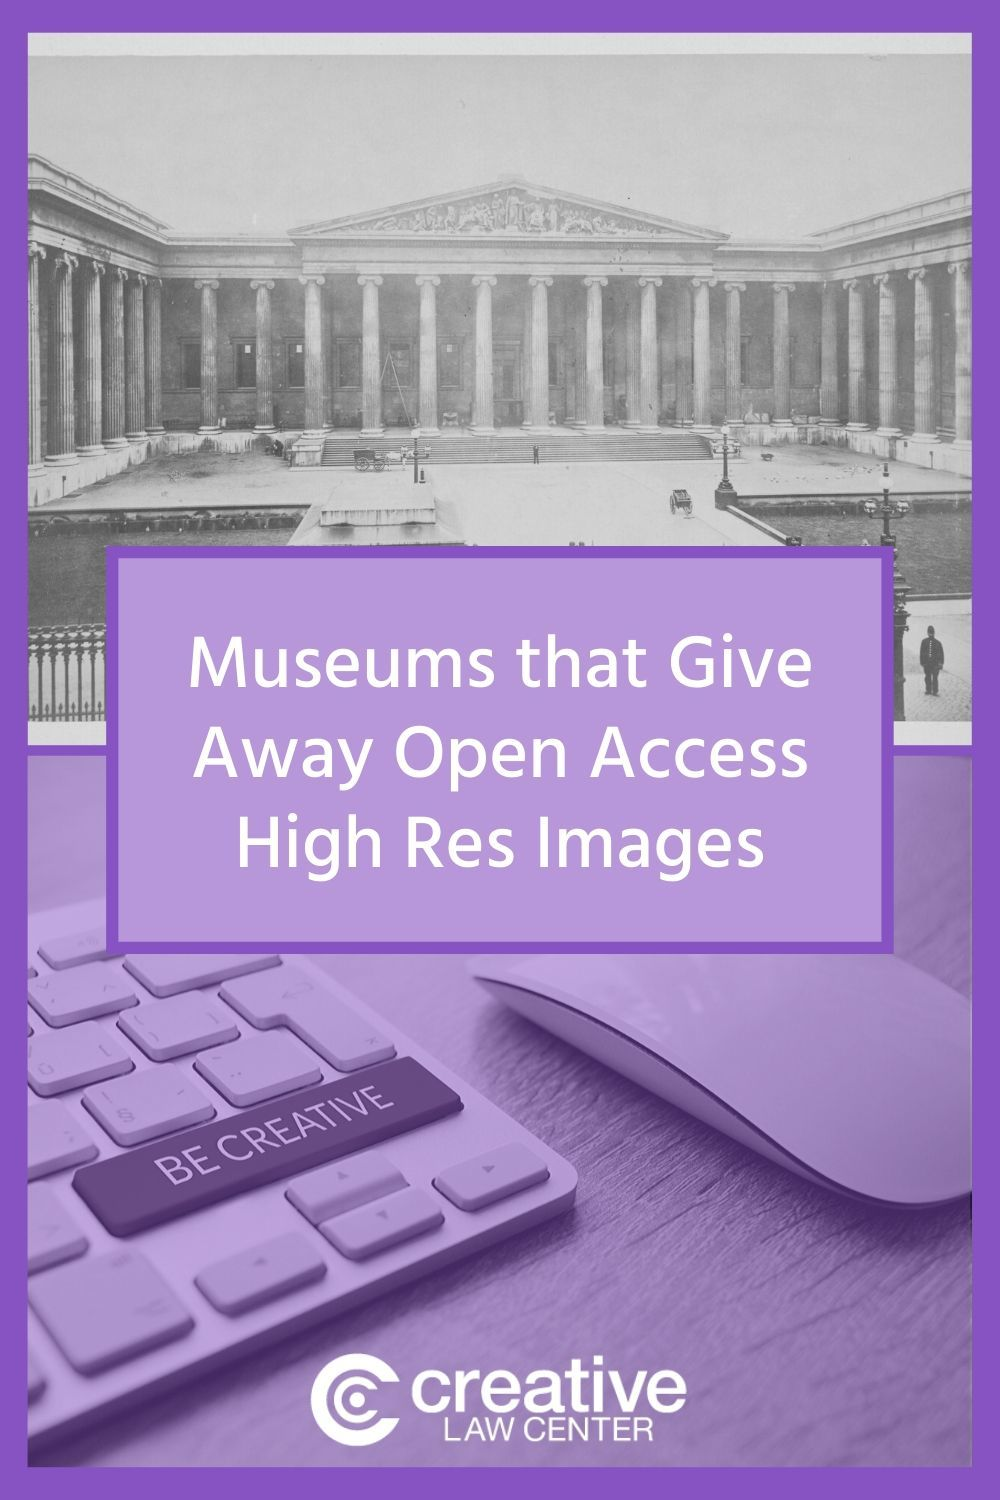 Museums that Give Away Open Access Images of Public Domain Work